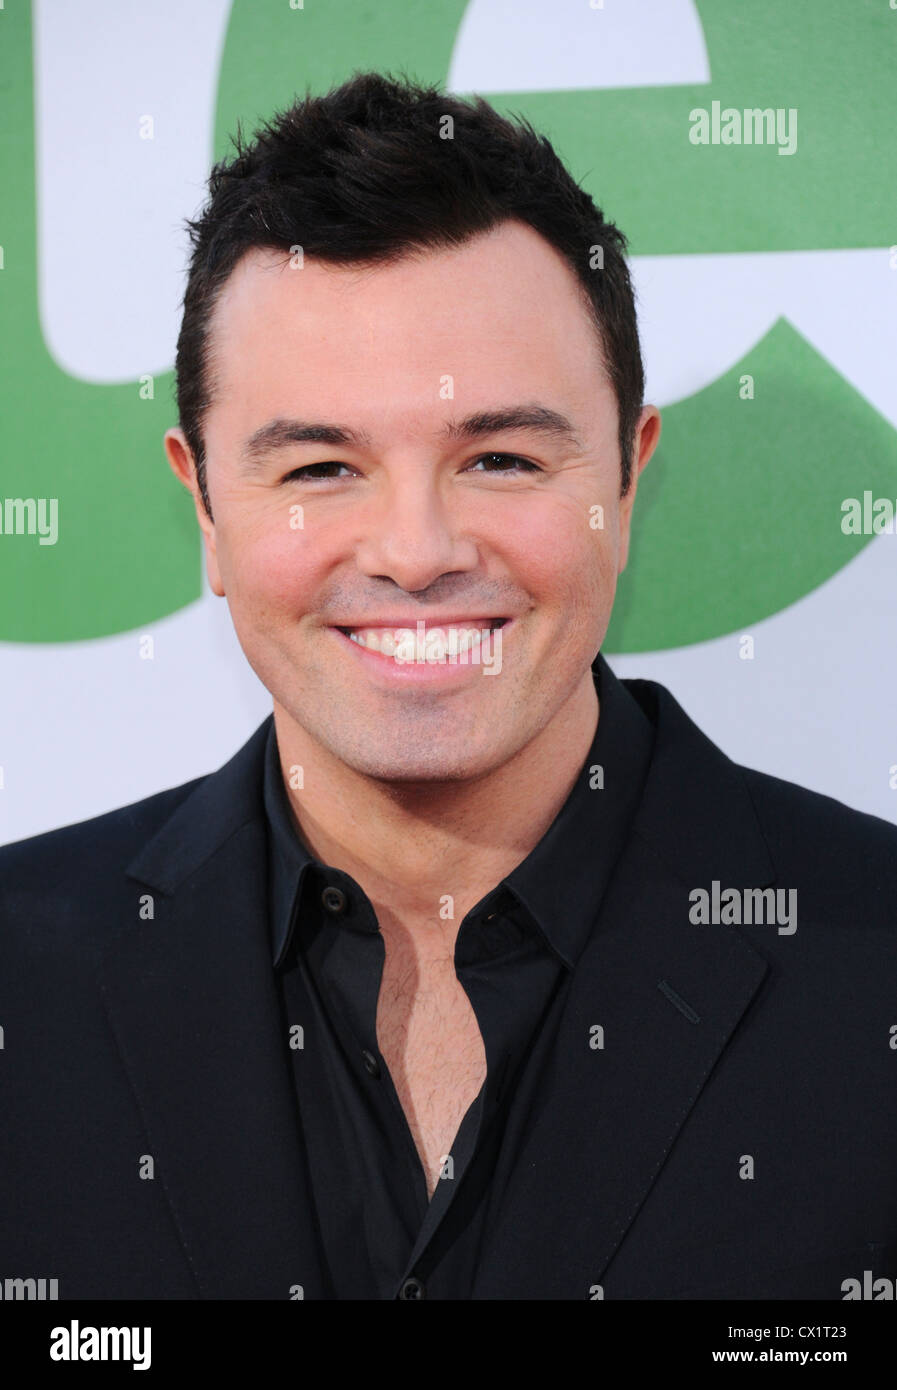 Los Angeles, California, USA. 21st June 2012. Seth MacFarlane © Sydney Alford / Alamy Live News - Stock Image